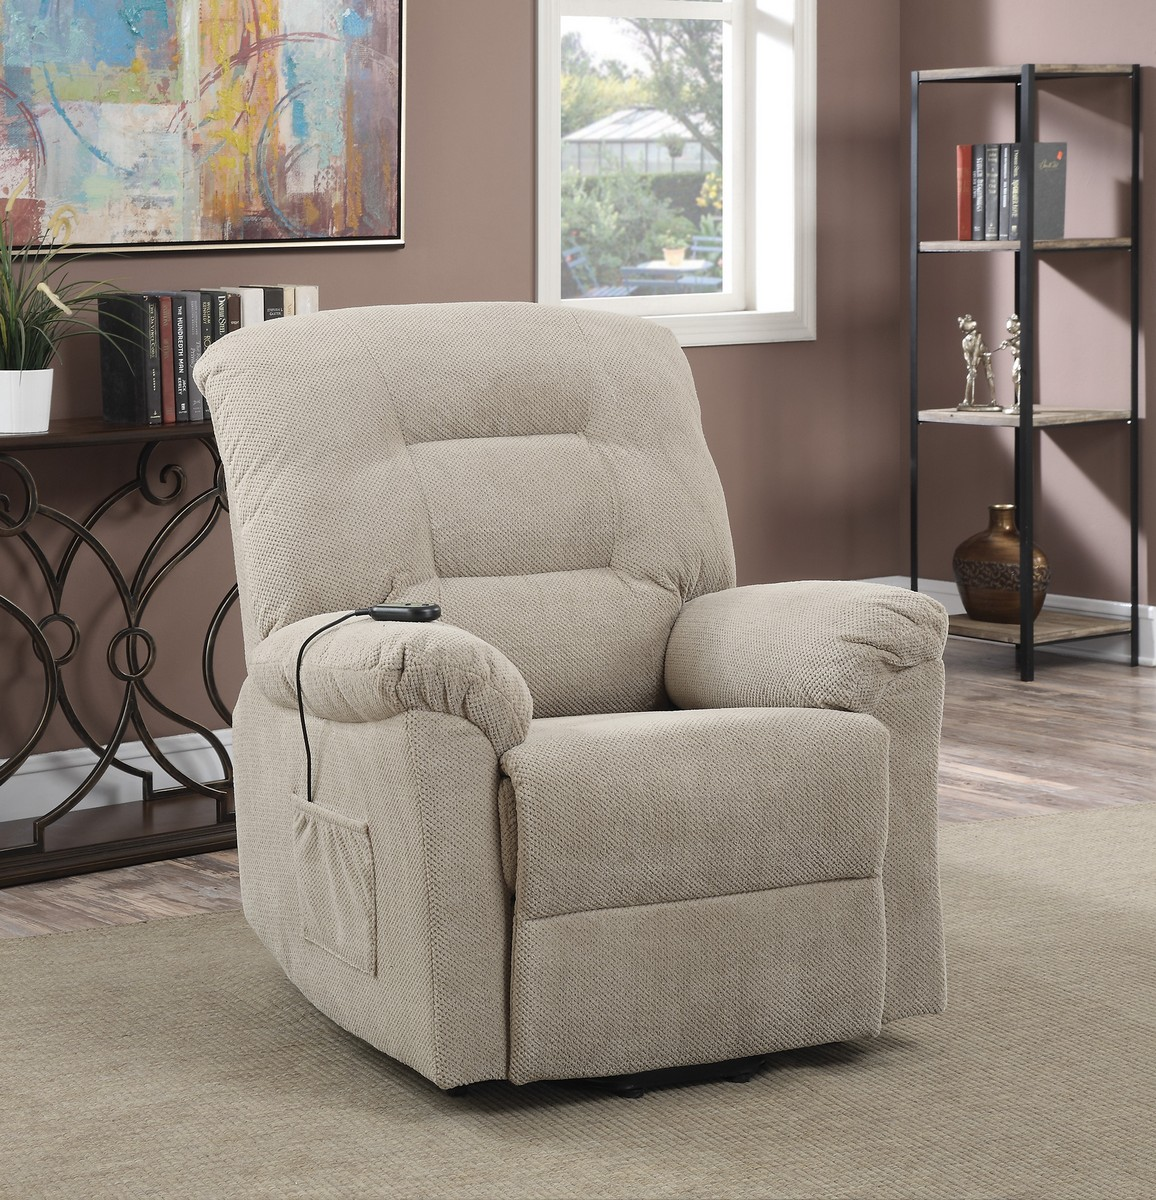 Coaster 600399 Power Lift Recliner - Taupe